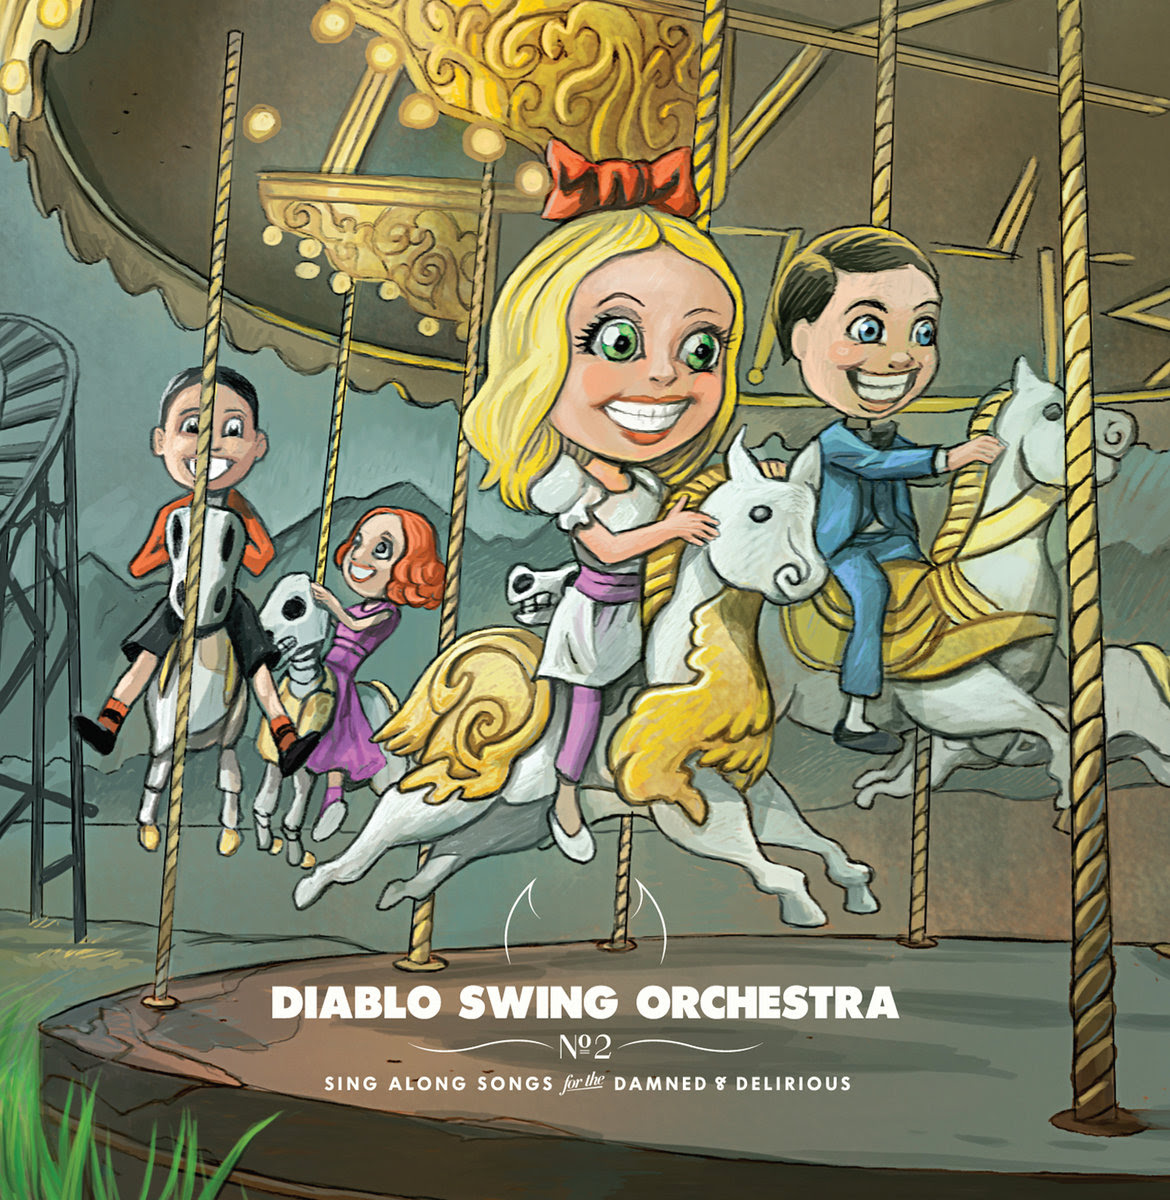 Diablo Swing Orchestra - Sing Along Songs for the Damned & Delirious (2009)